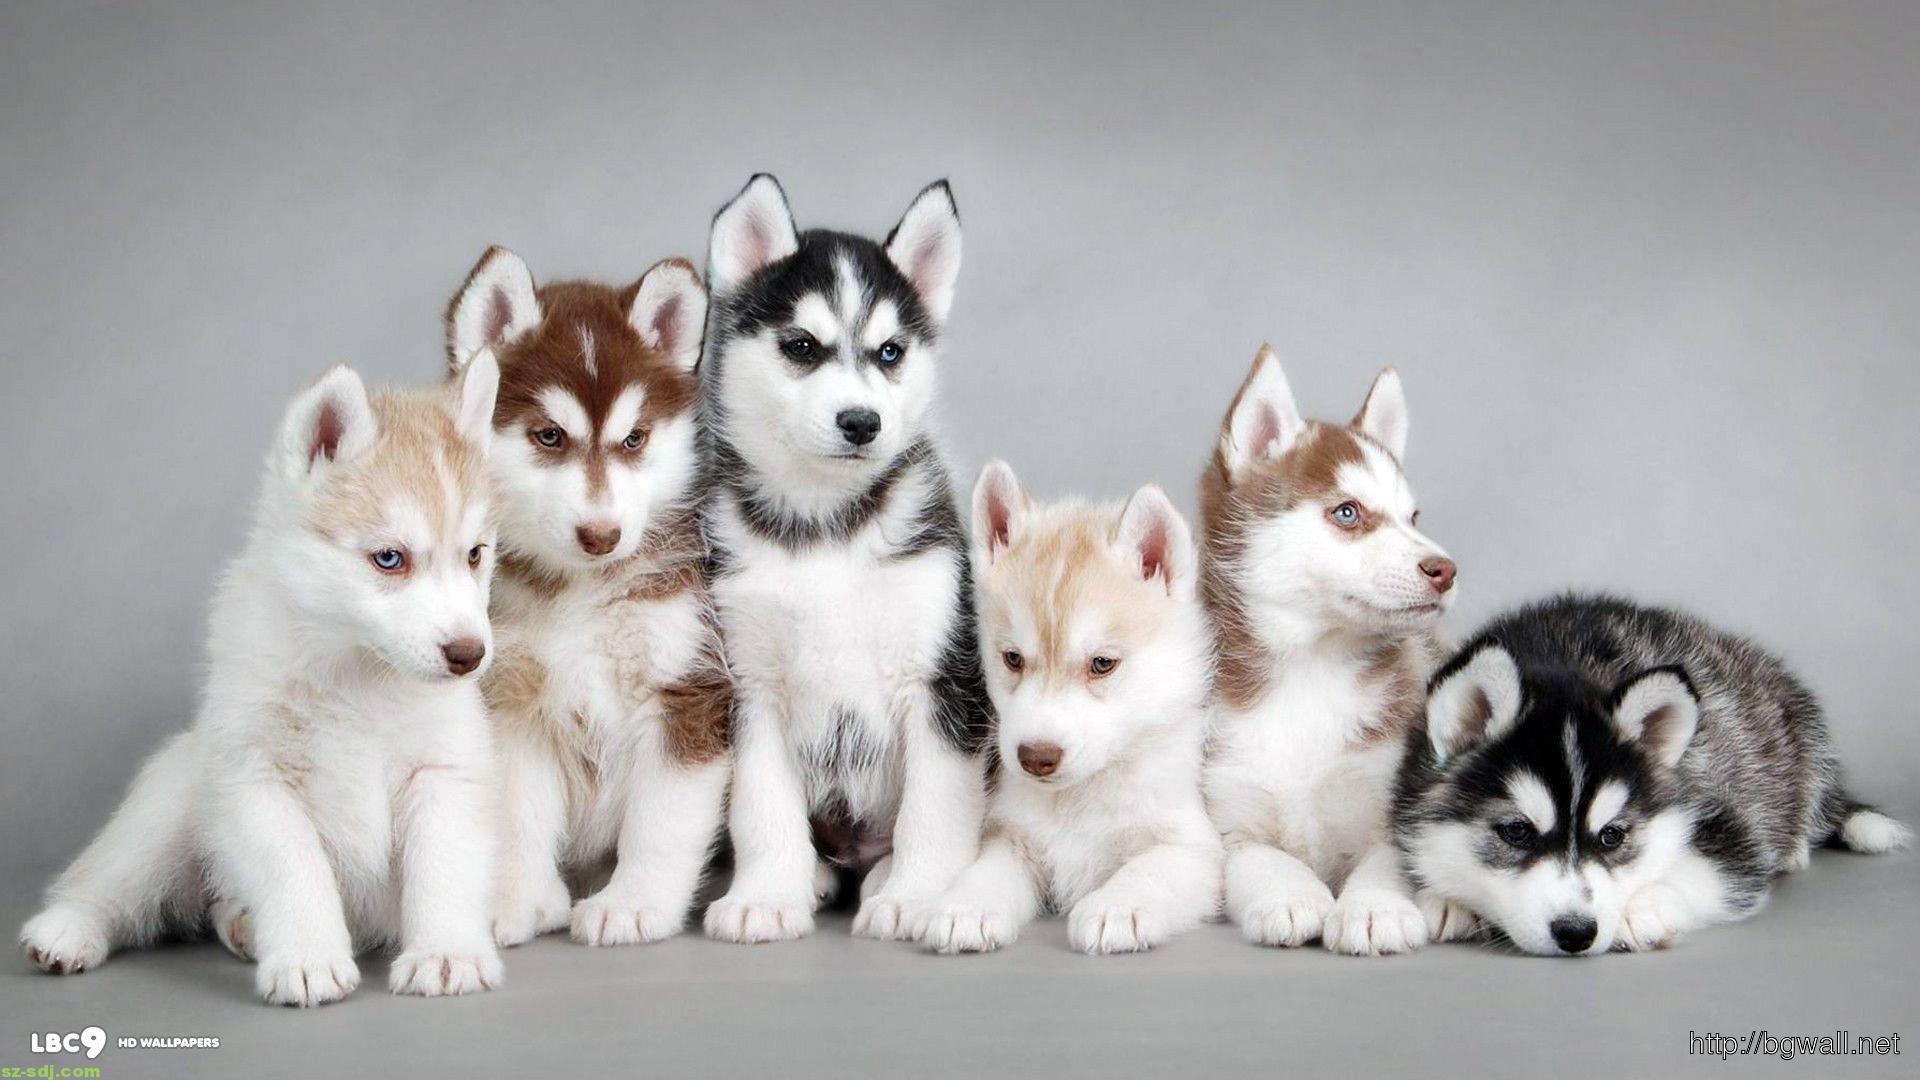 Cute baby animals siberian husky wallpaper hd background - Cute baby animal desktop backgrounds ...